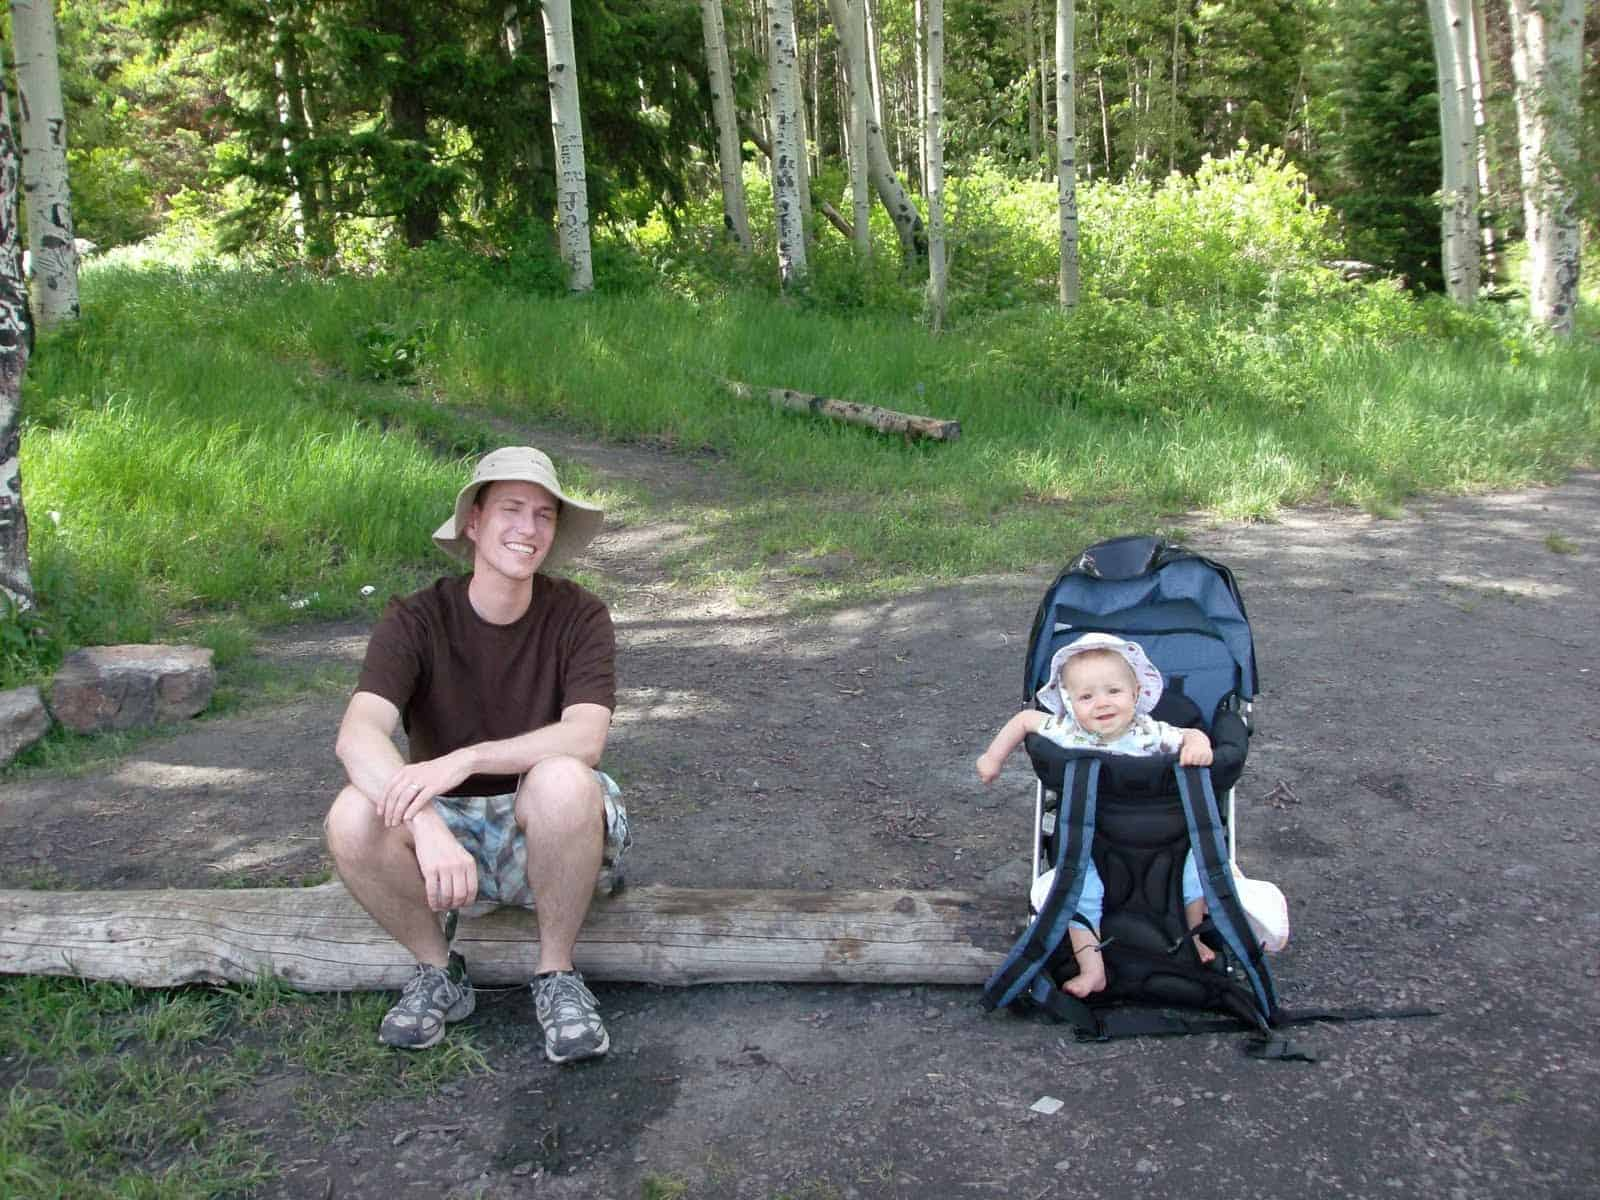 Child carriers for hiking are worth the investment!